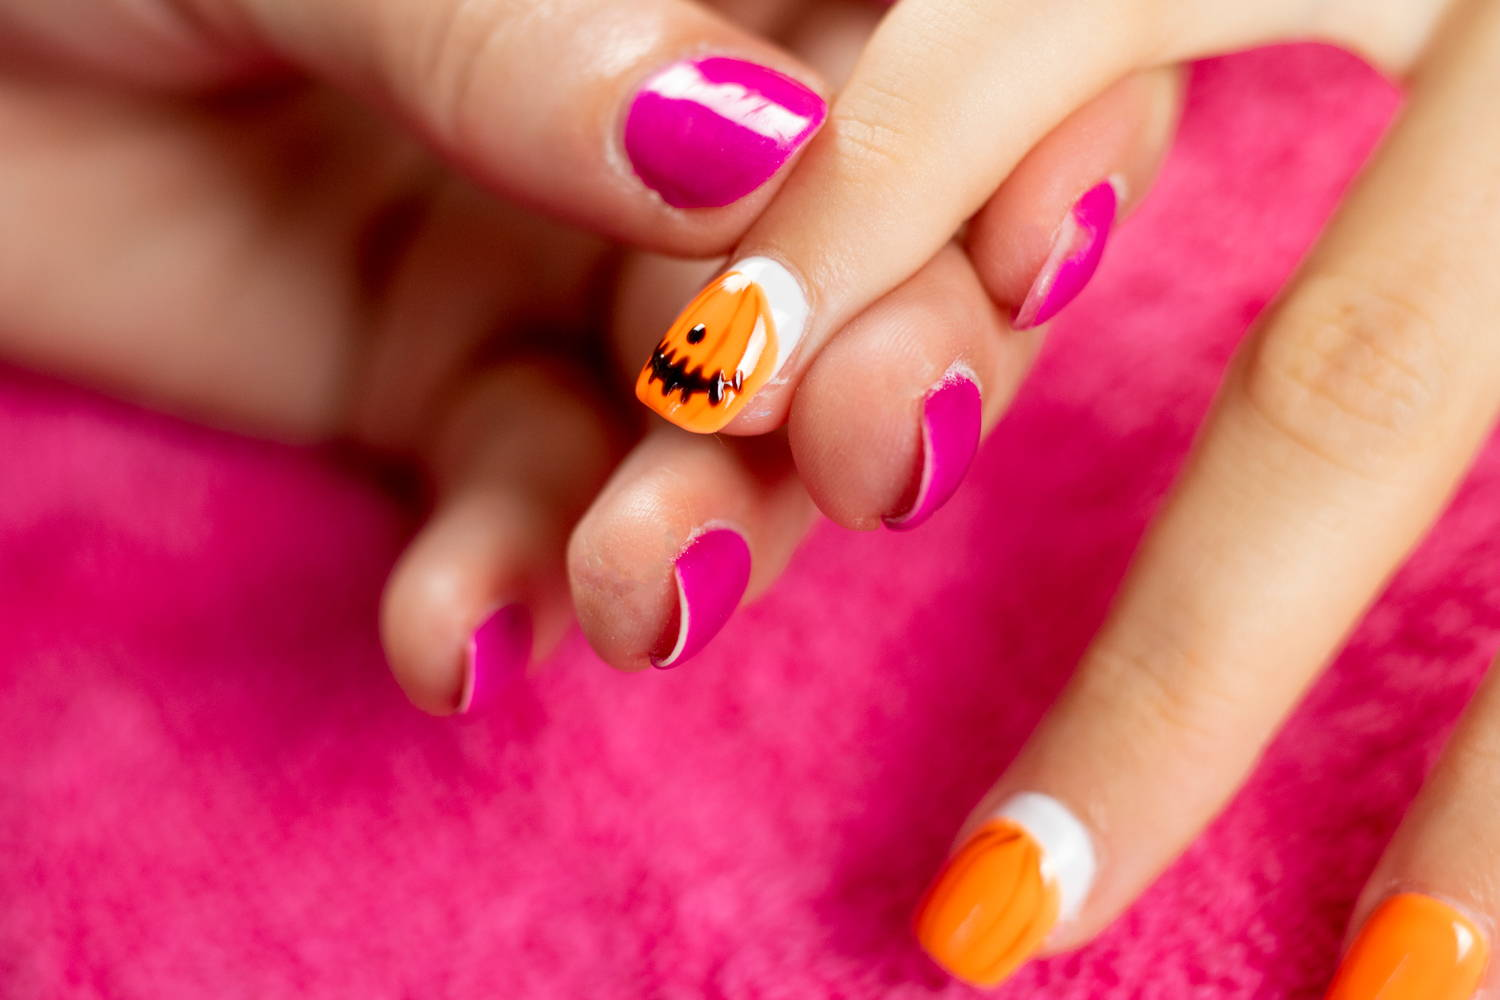 Pumpkin nails detailing added to nail using a dotting tool and ORLY Liquid Vinyl